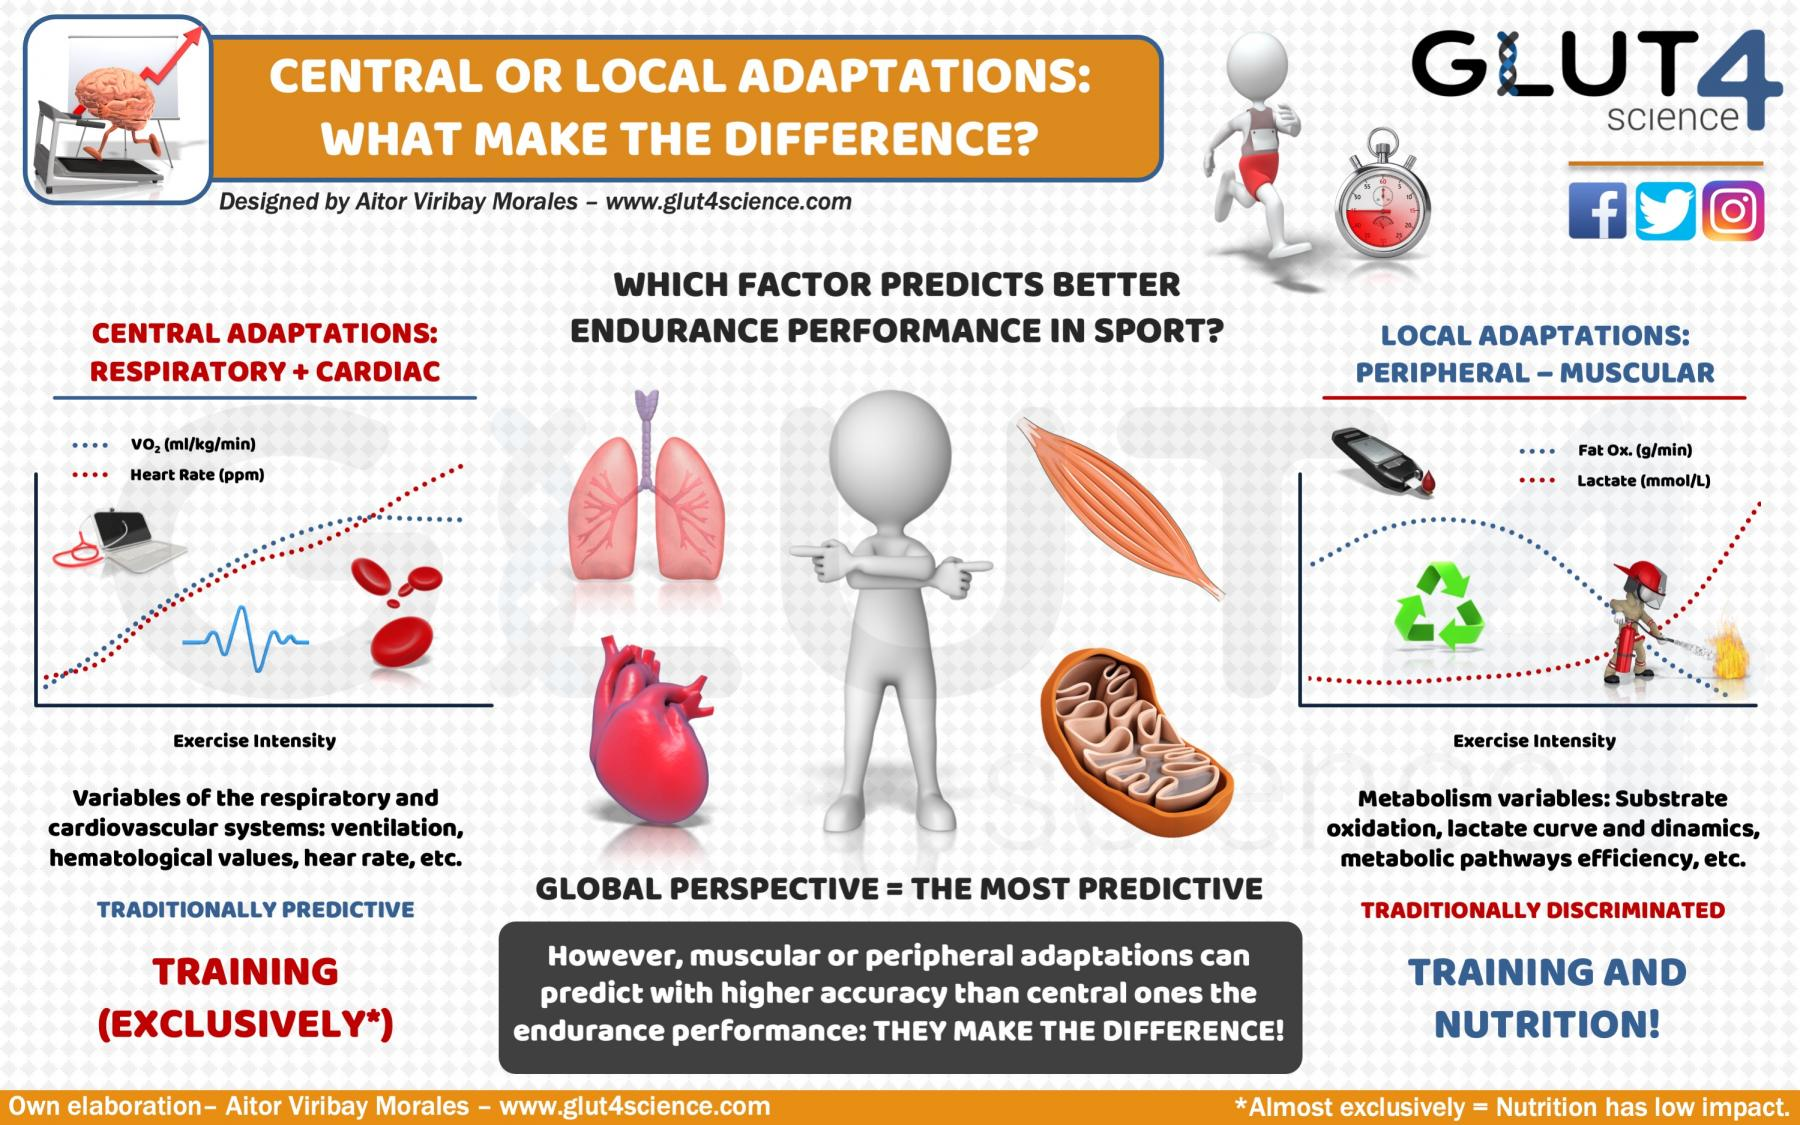 Central or Peripheral adaptations: What make the difference?